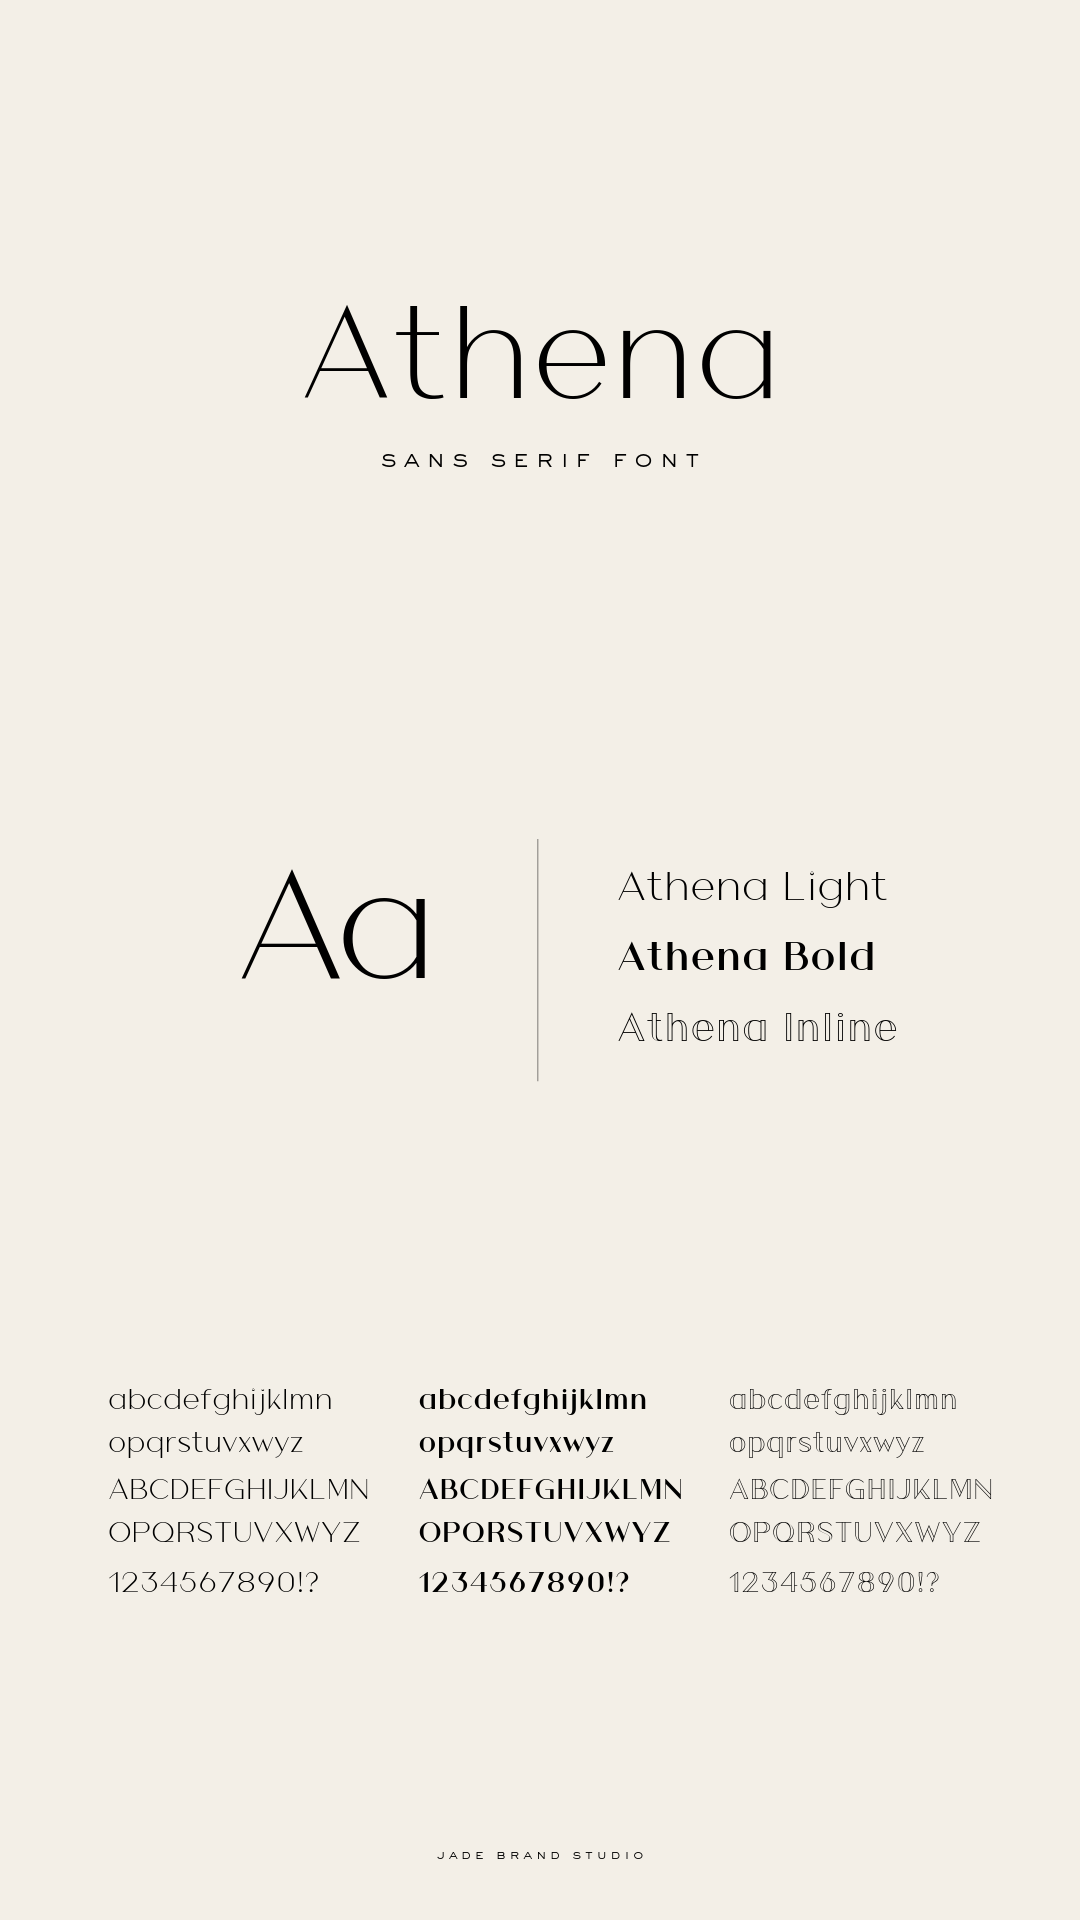 Athena Font Lettering Fonts Typography Fonts Typography